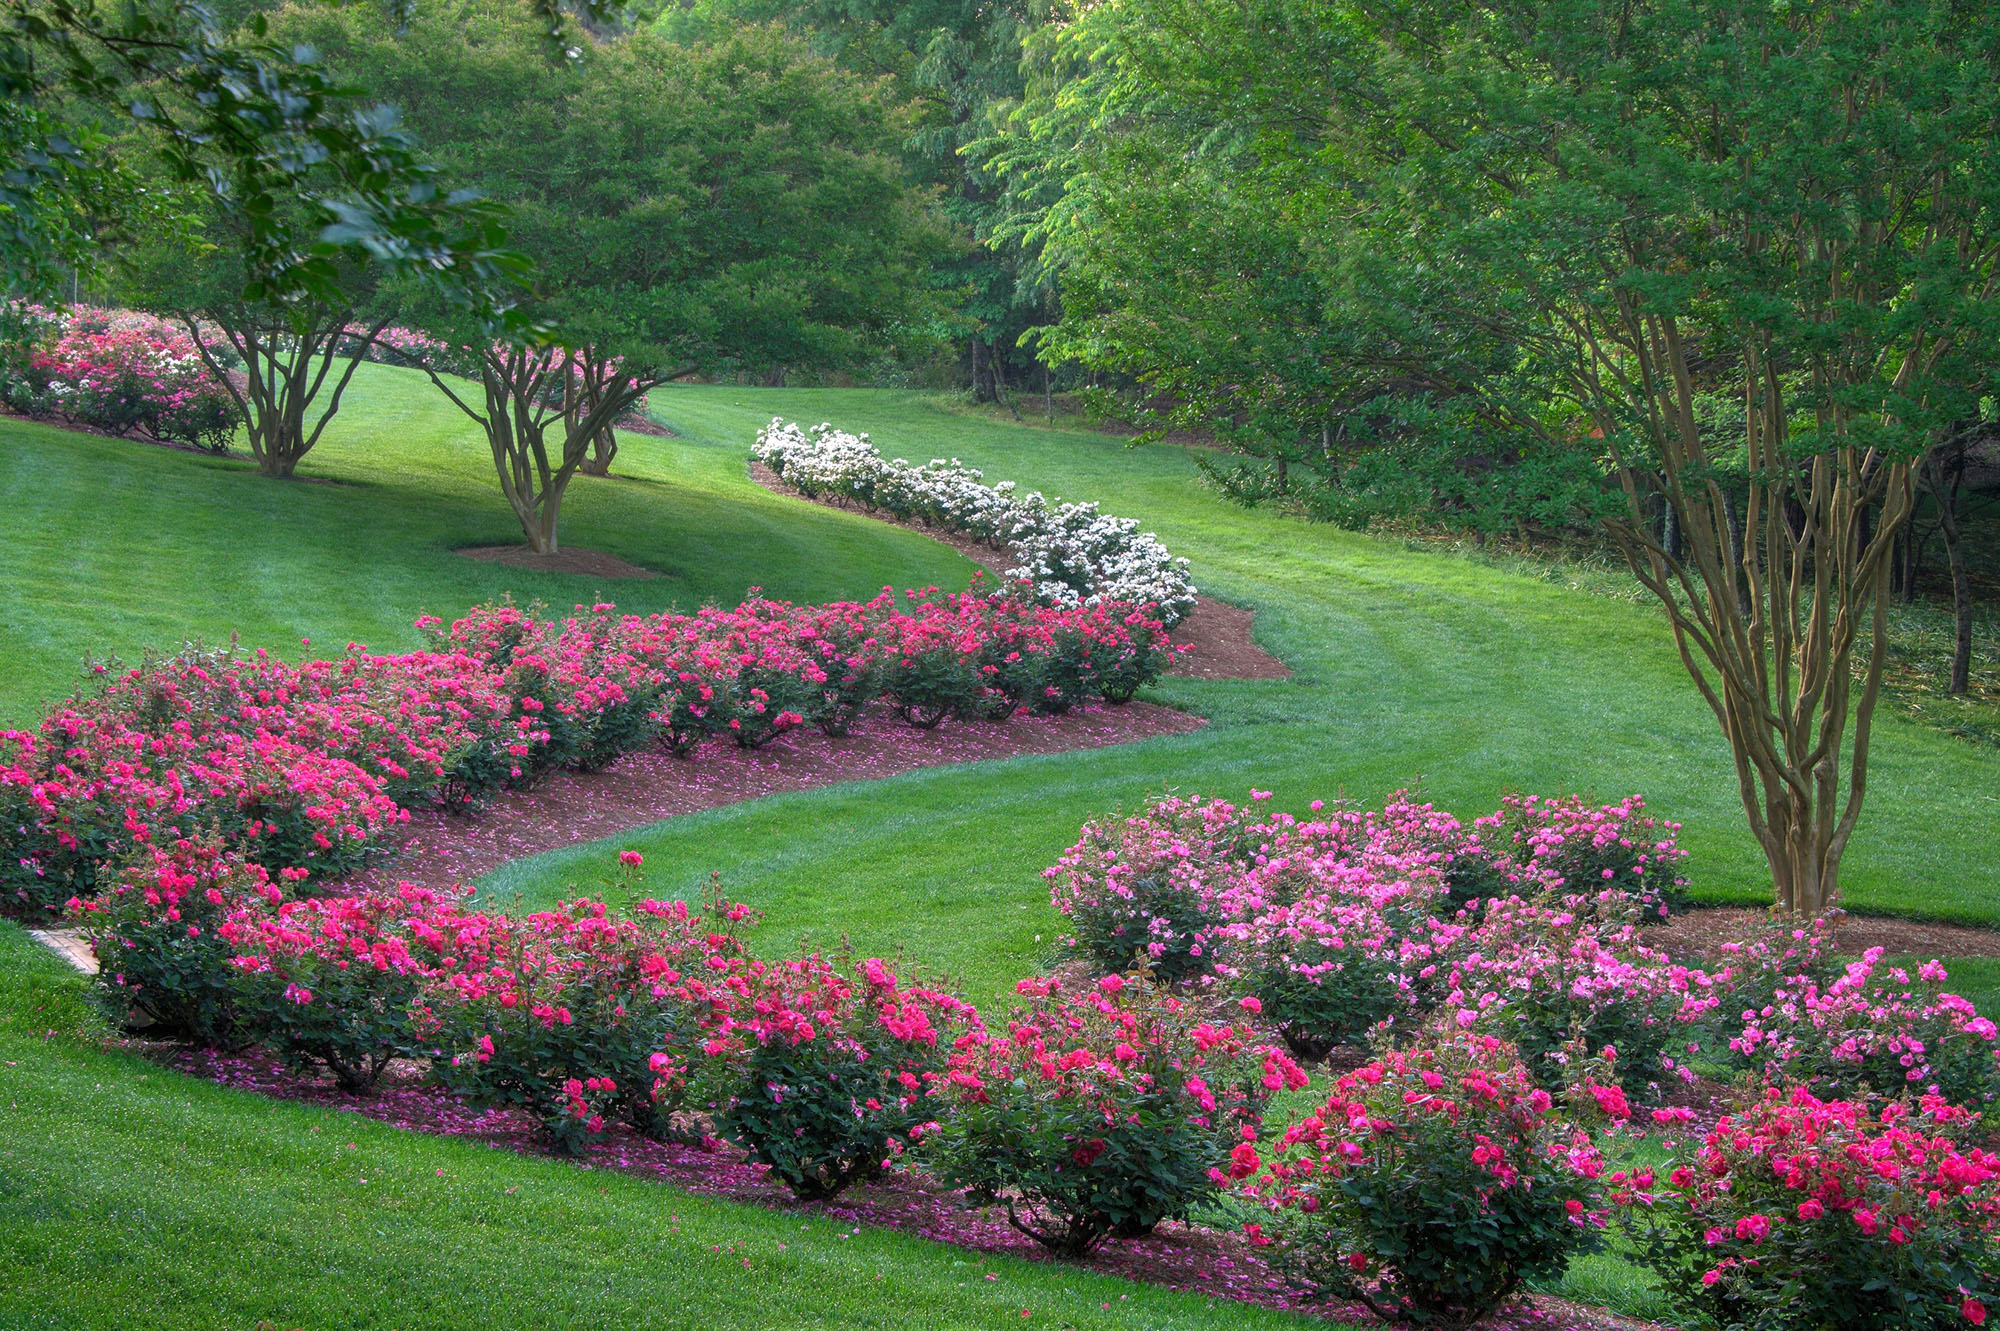 Georgia Garden: Spring Garden Tips And Inspiration From North Georgia